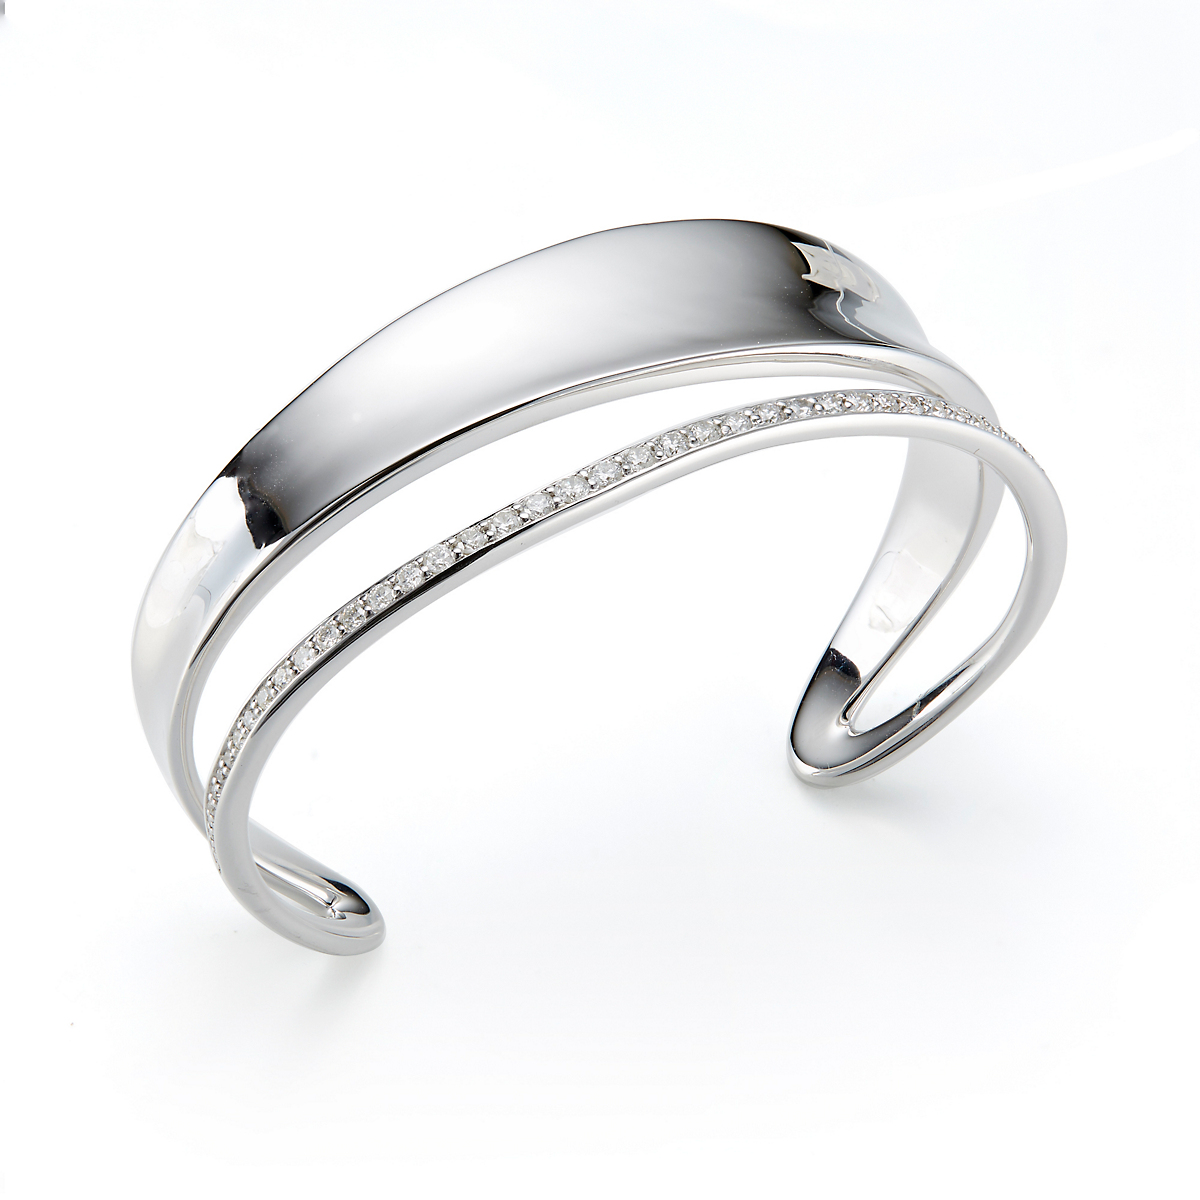 Georg Jensen Marcia Cuff Bracelet With Diamonds